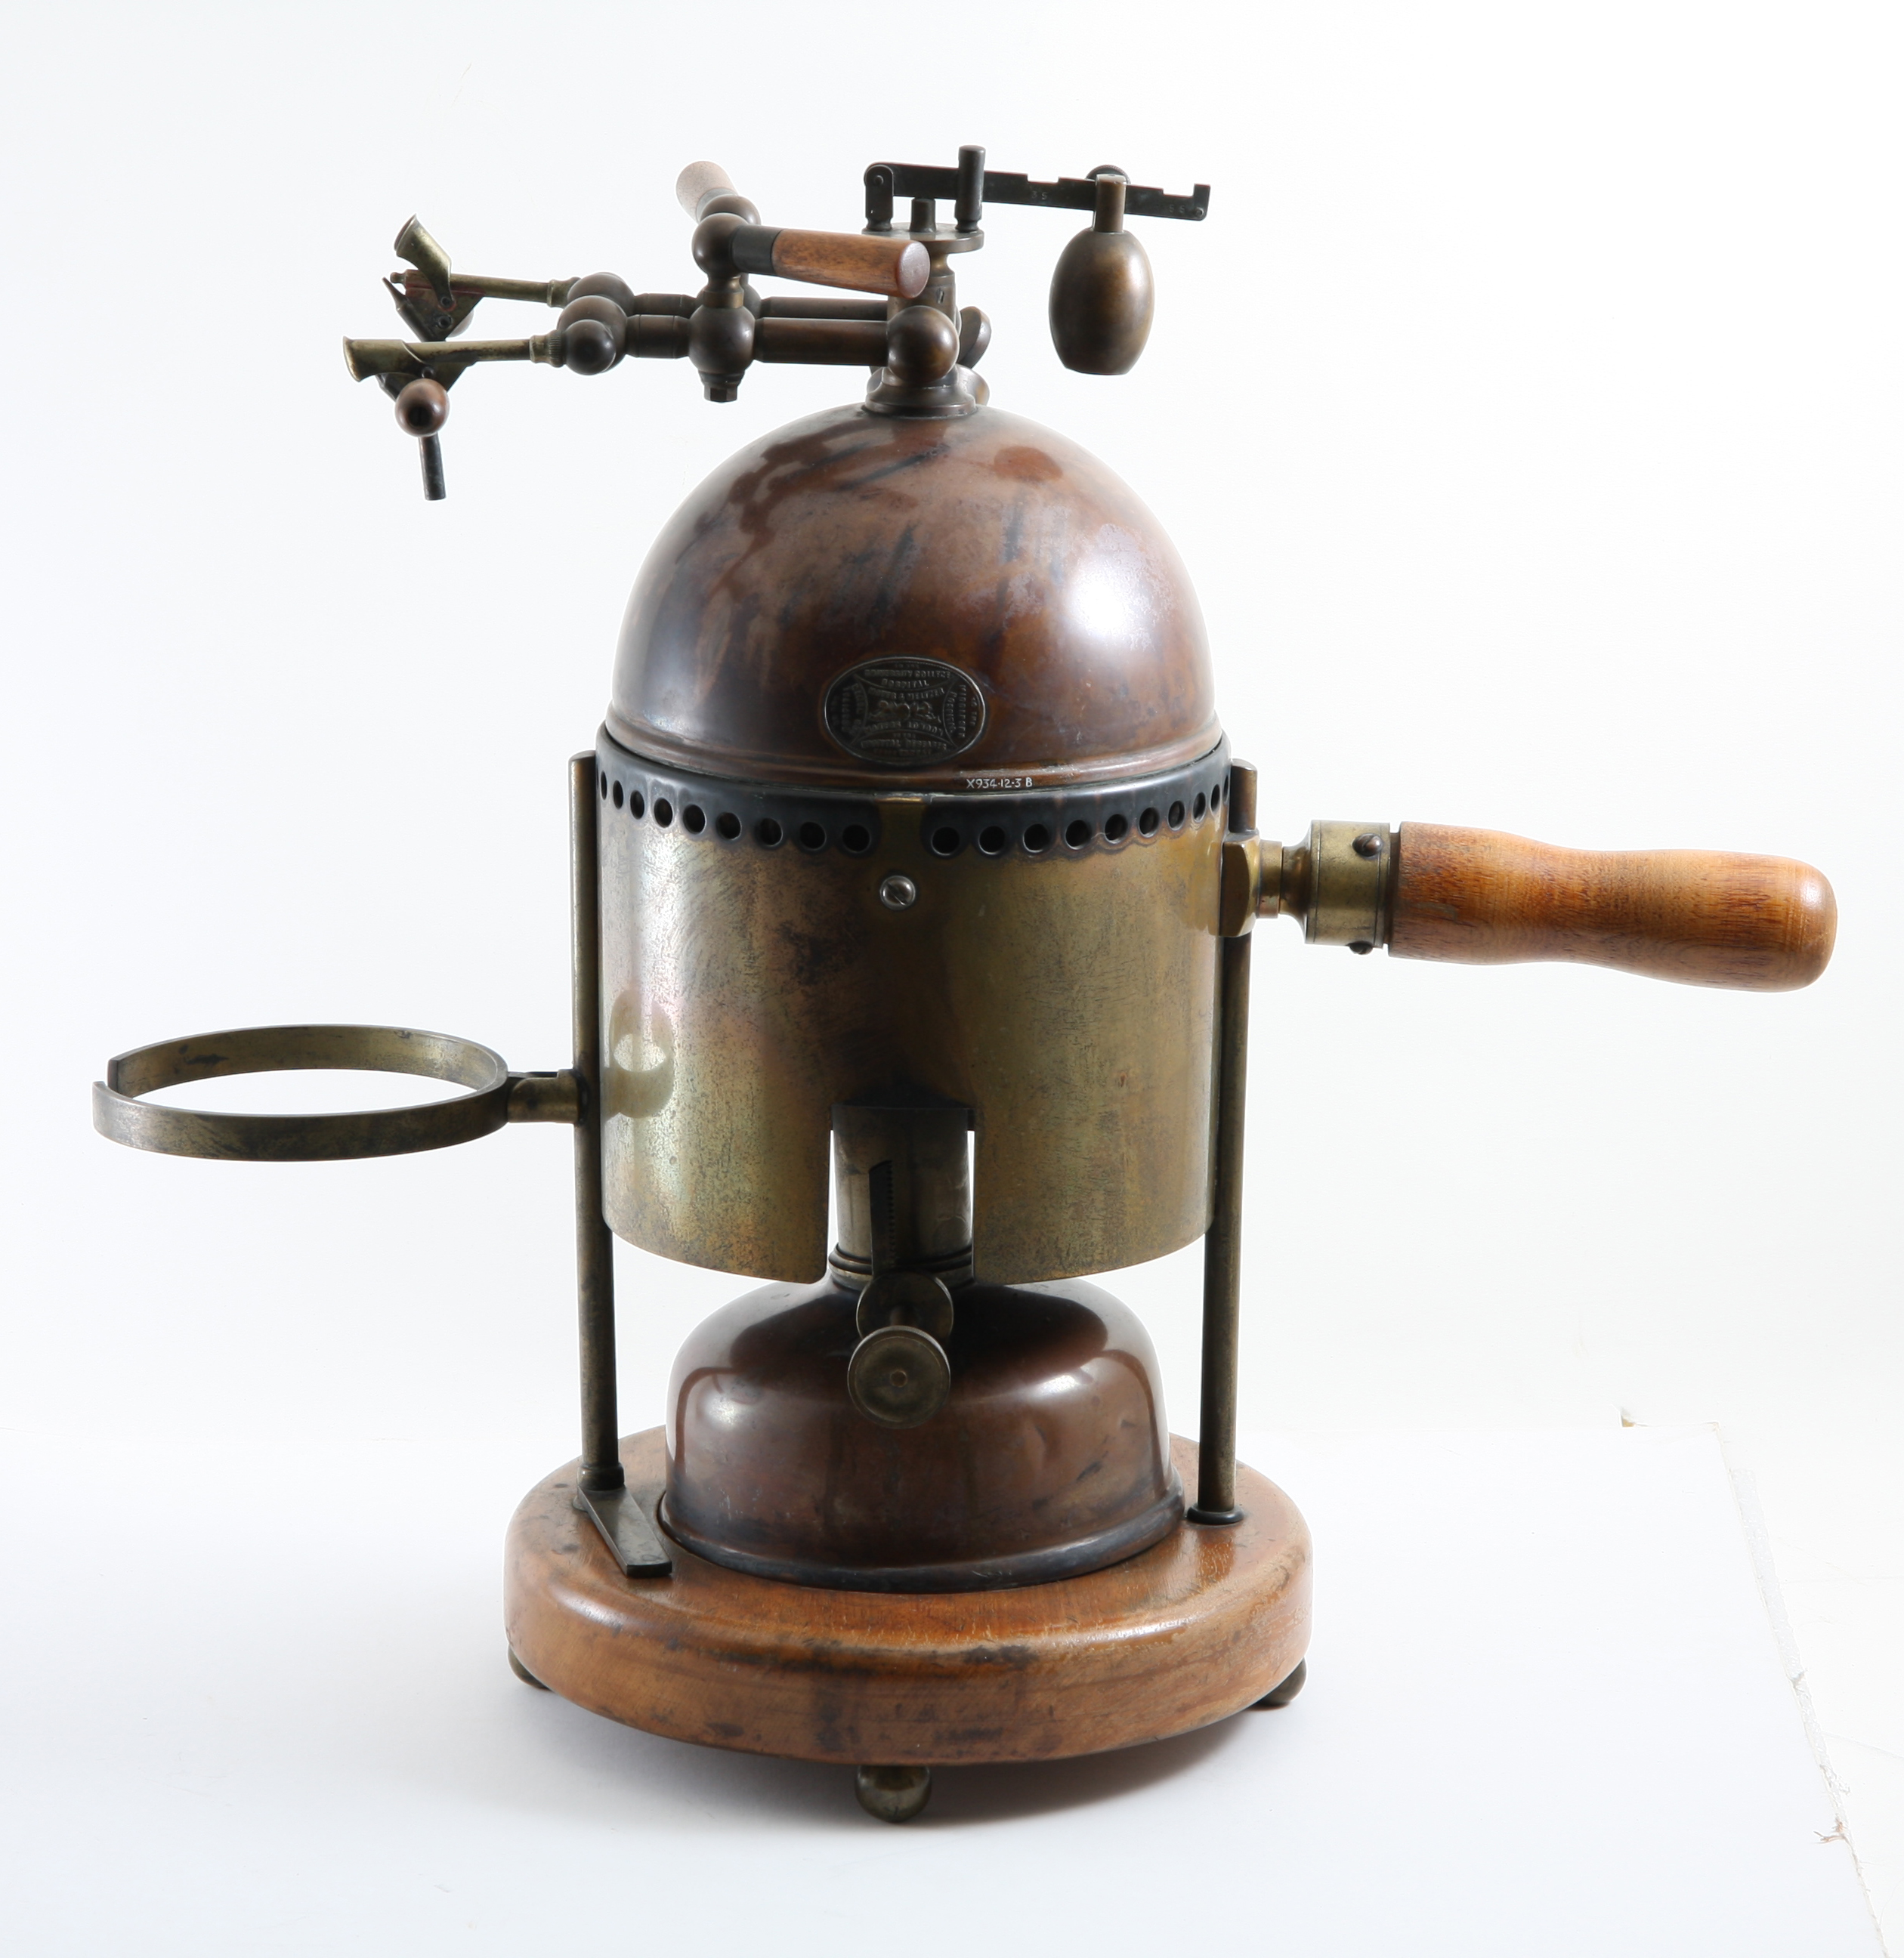 Carbolic Steam Sprayer (c.1870).  Museum of Health Care #1934.12.3